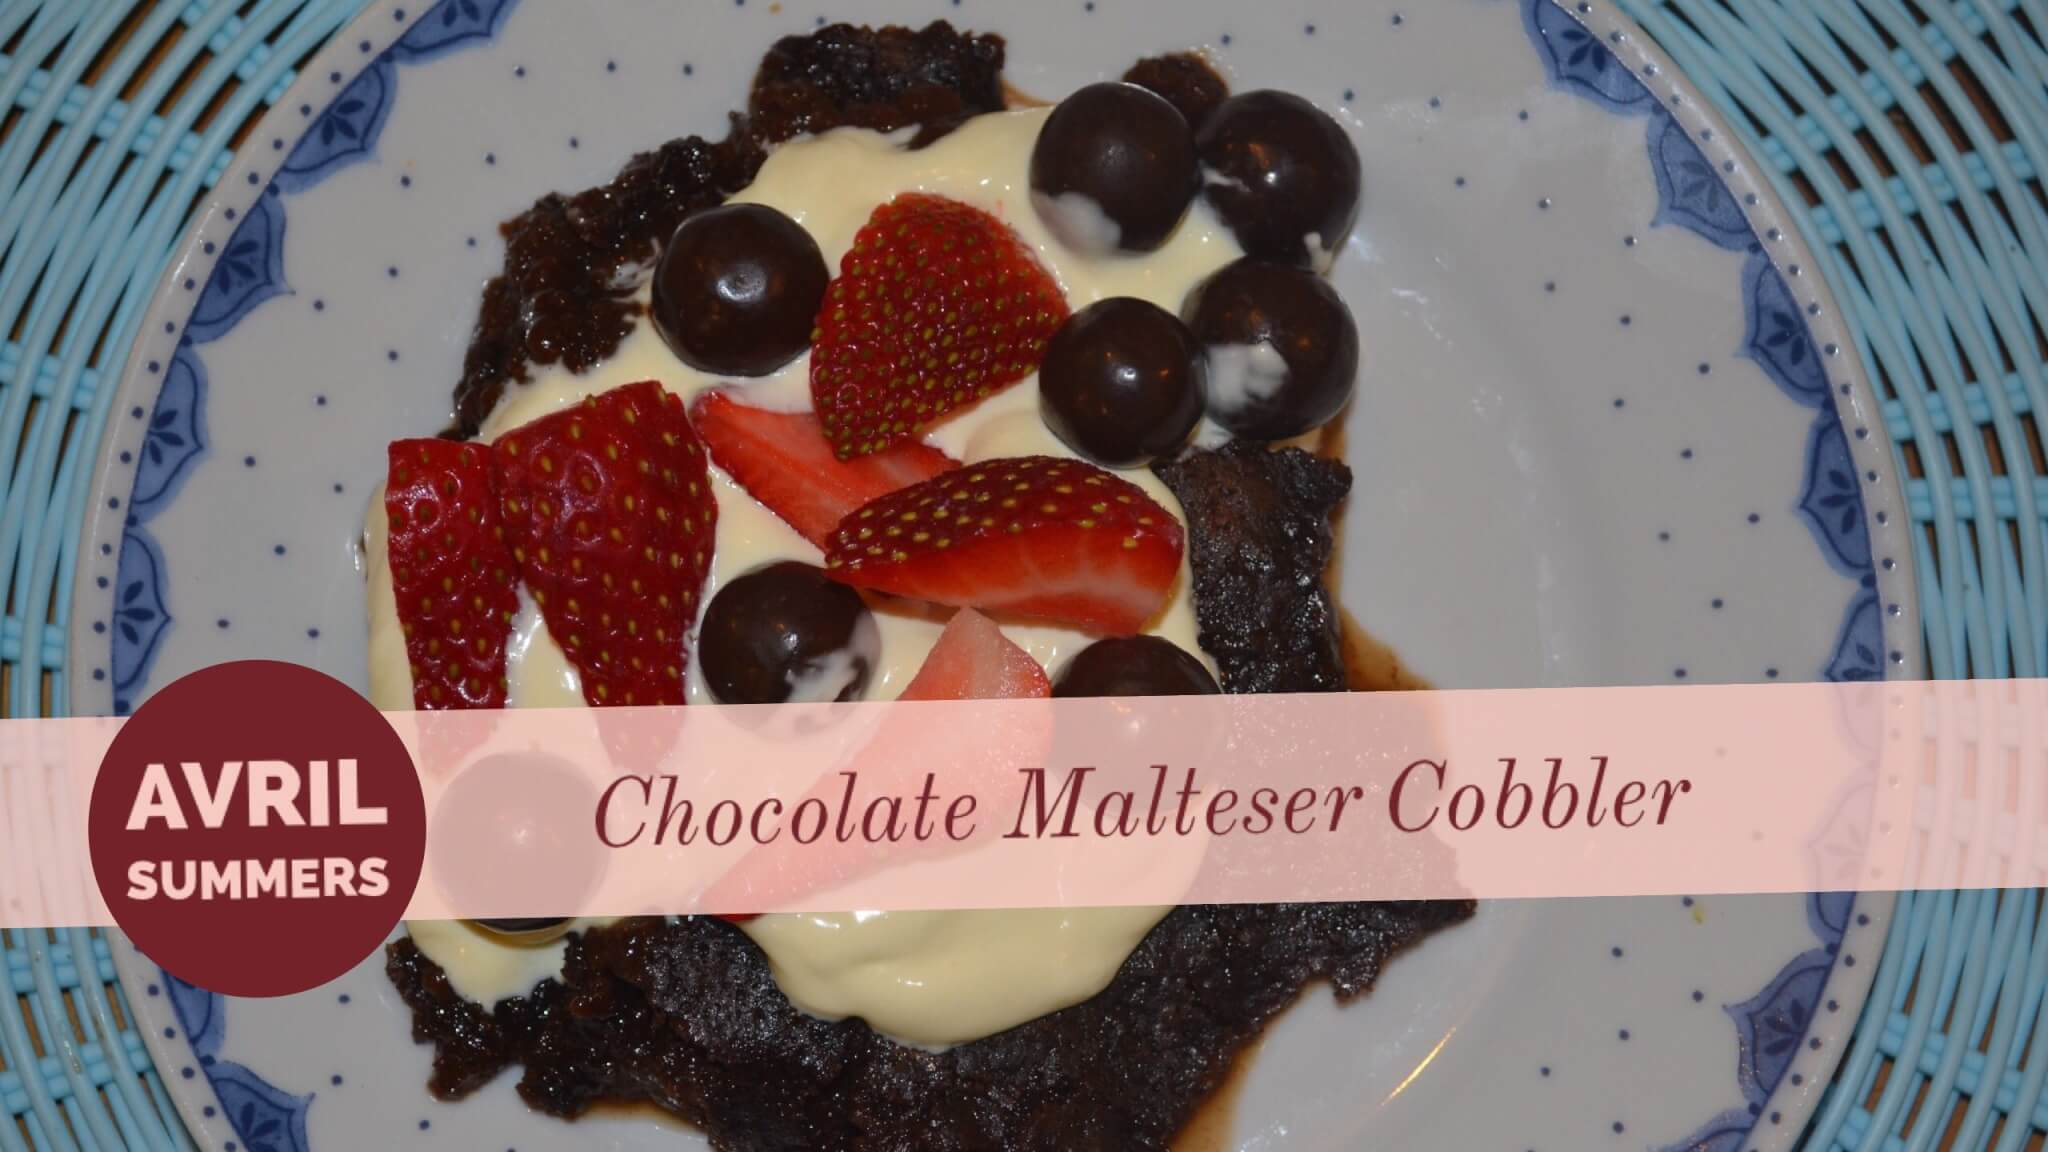 Chocolate Maltesers Cobbler | Avril Summers